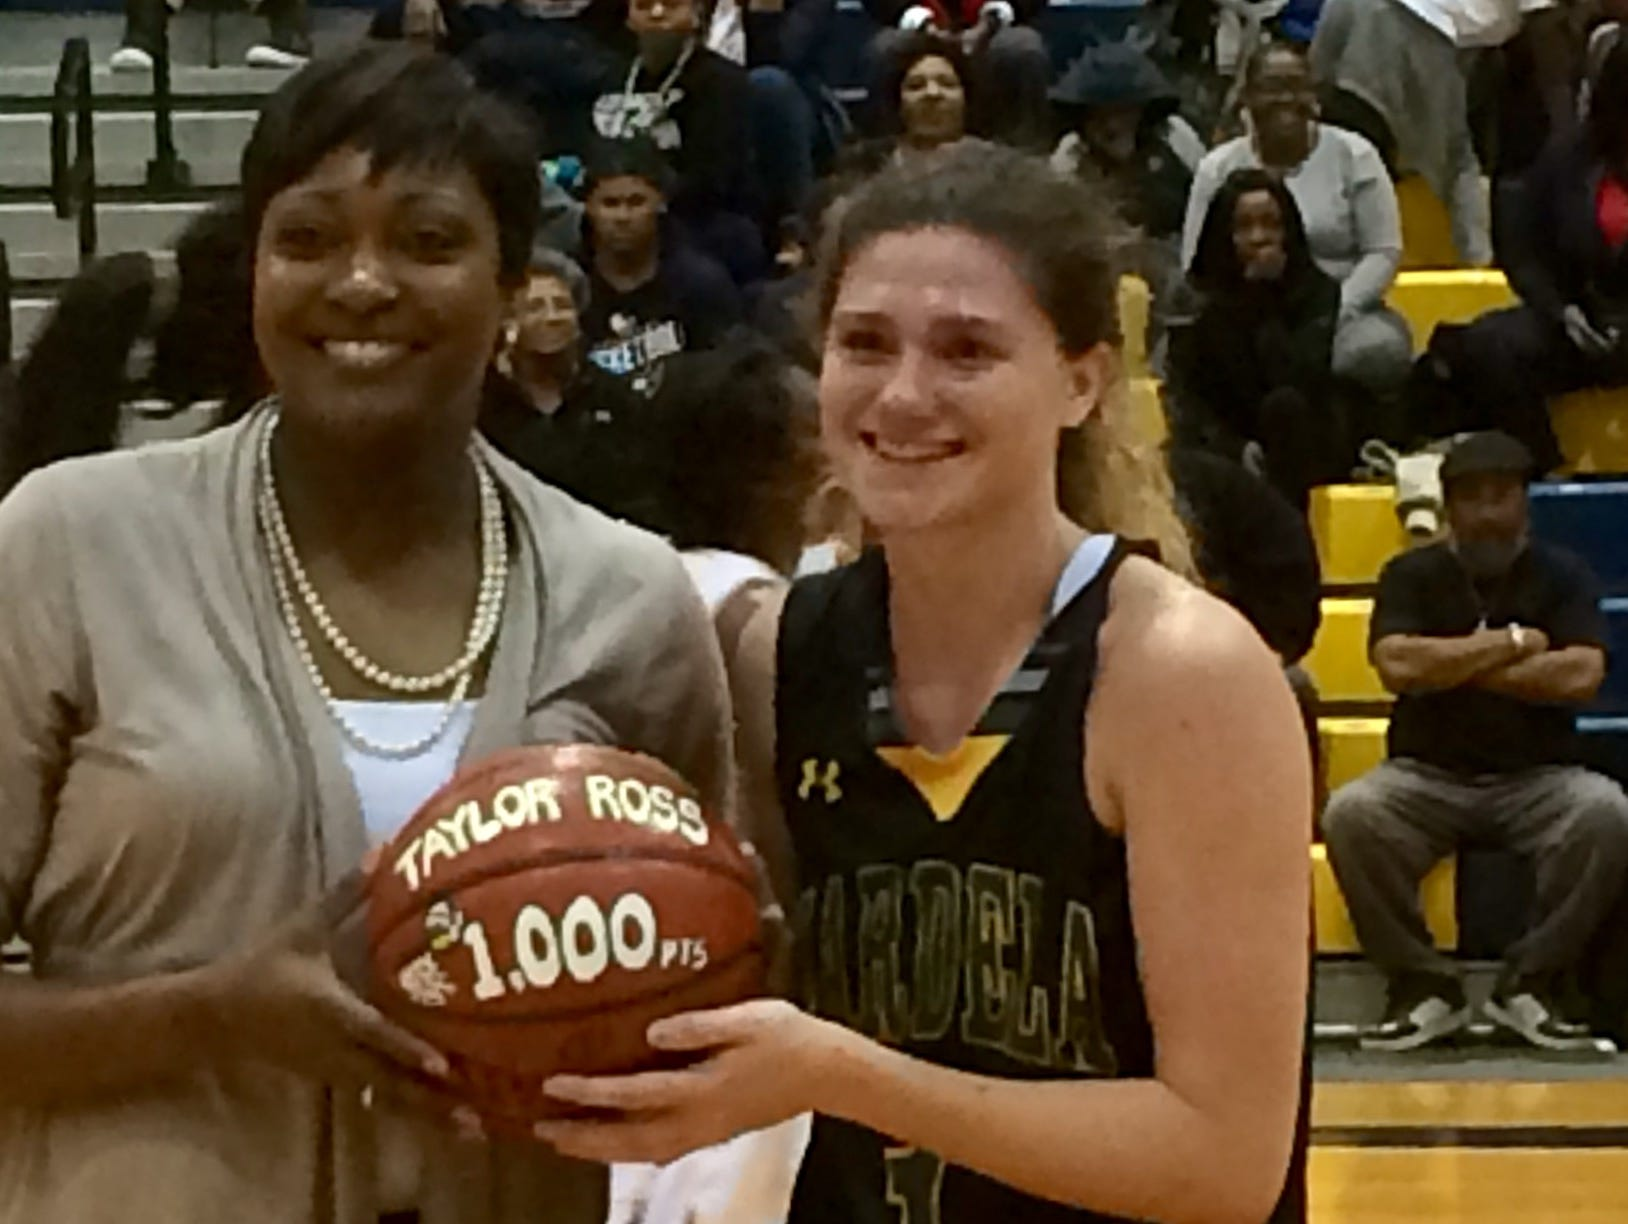 Mardela head coach Kesha Cook presents Taylor Ross with a commemorative ball after she scored her 1,000th point.